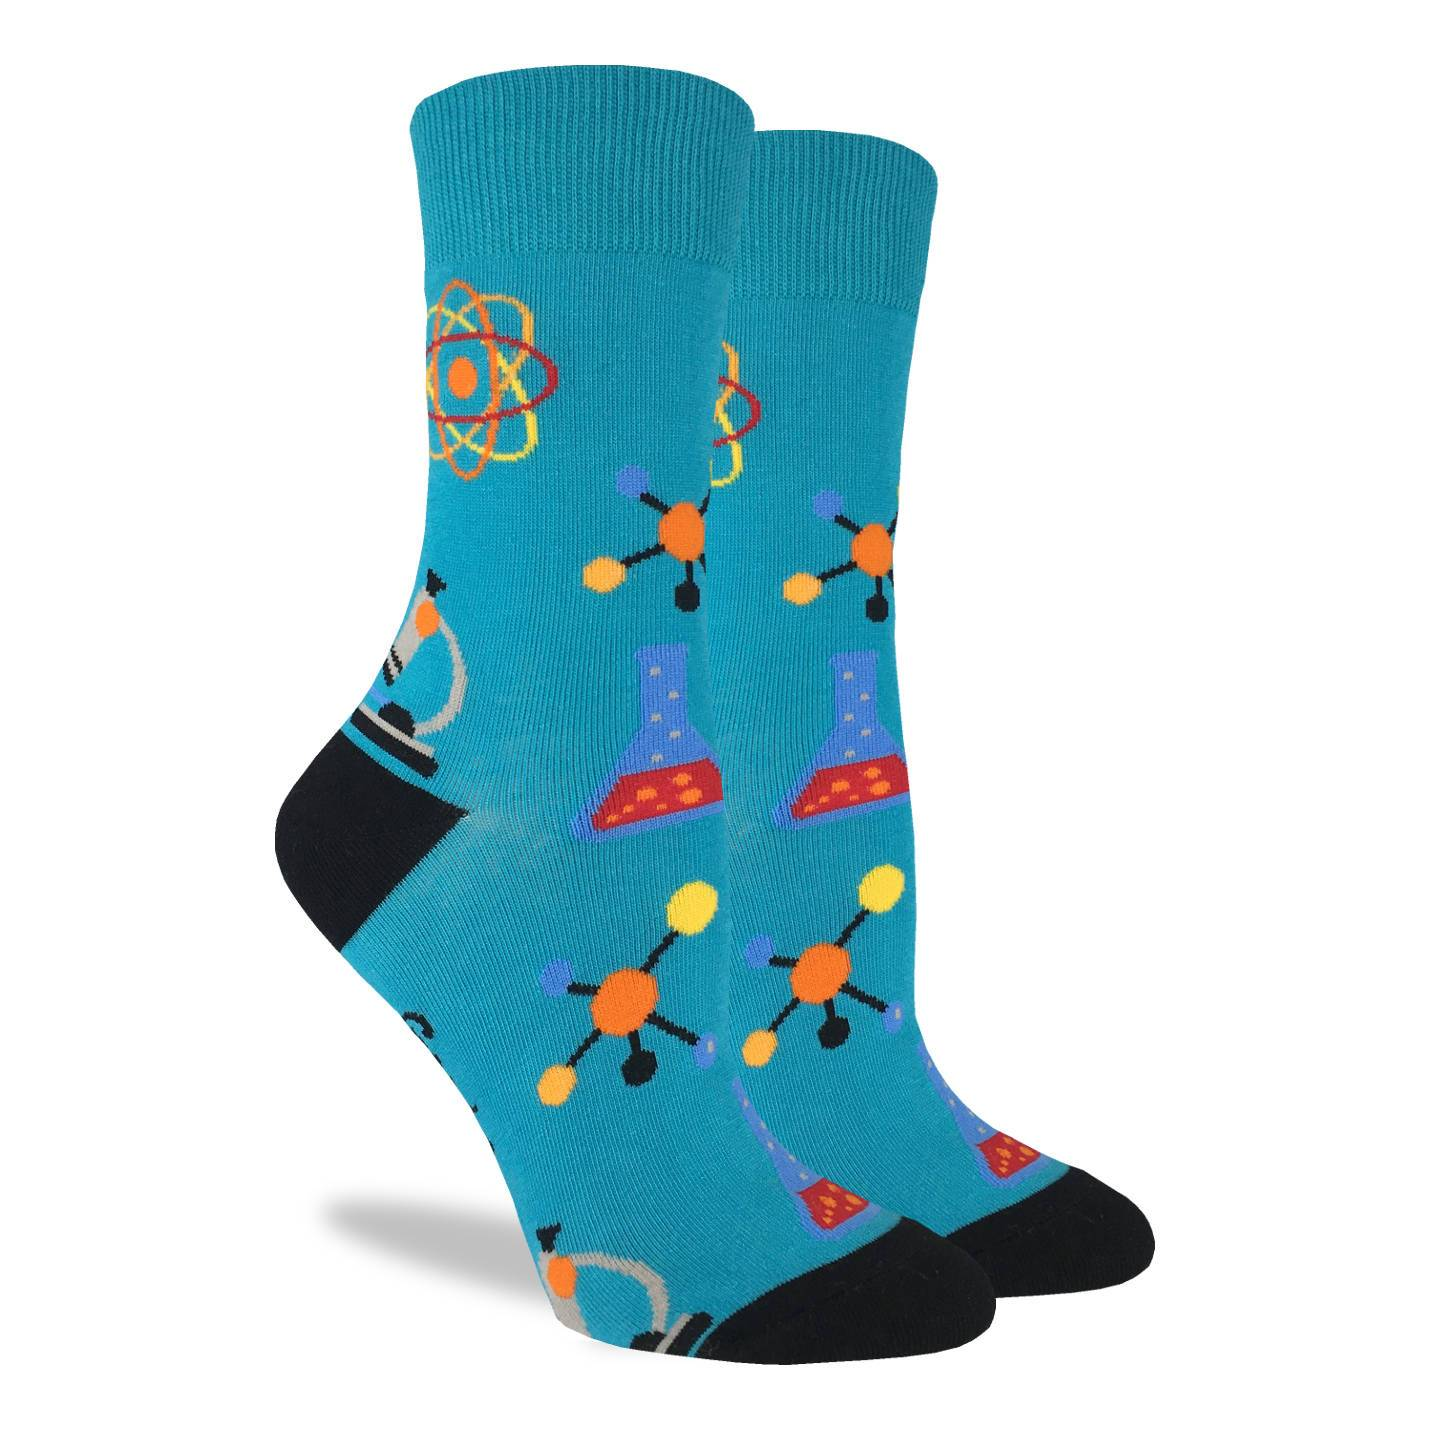 Women's Science Socks - Good Luck Sock